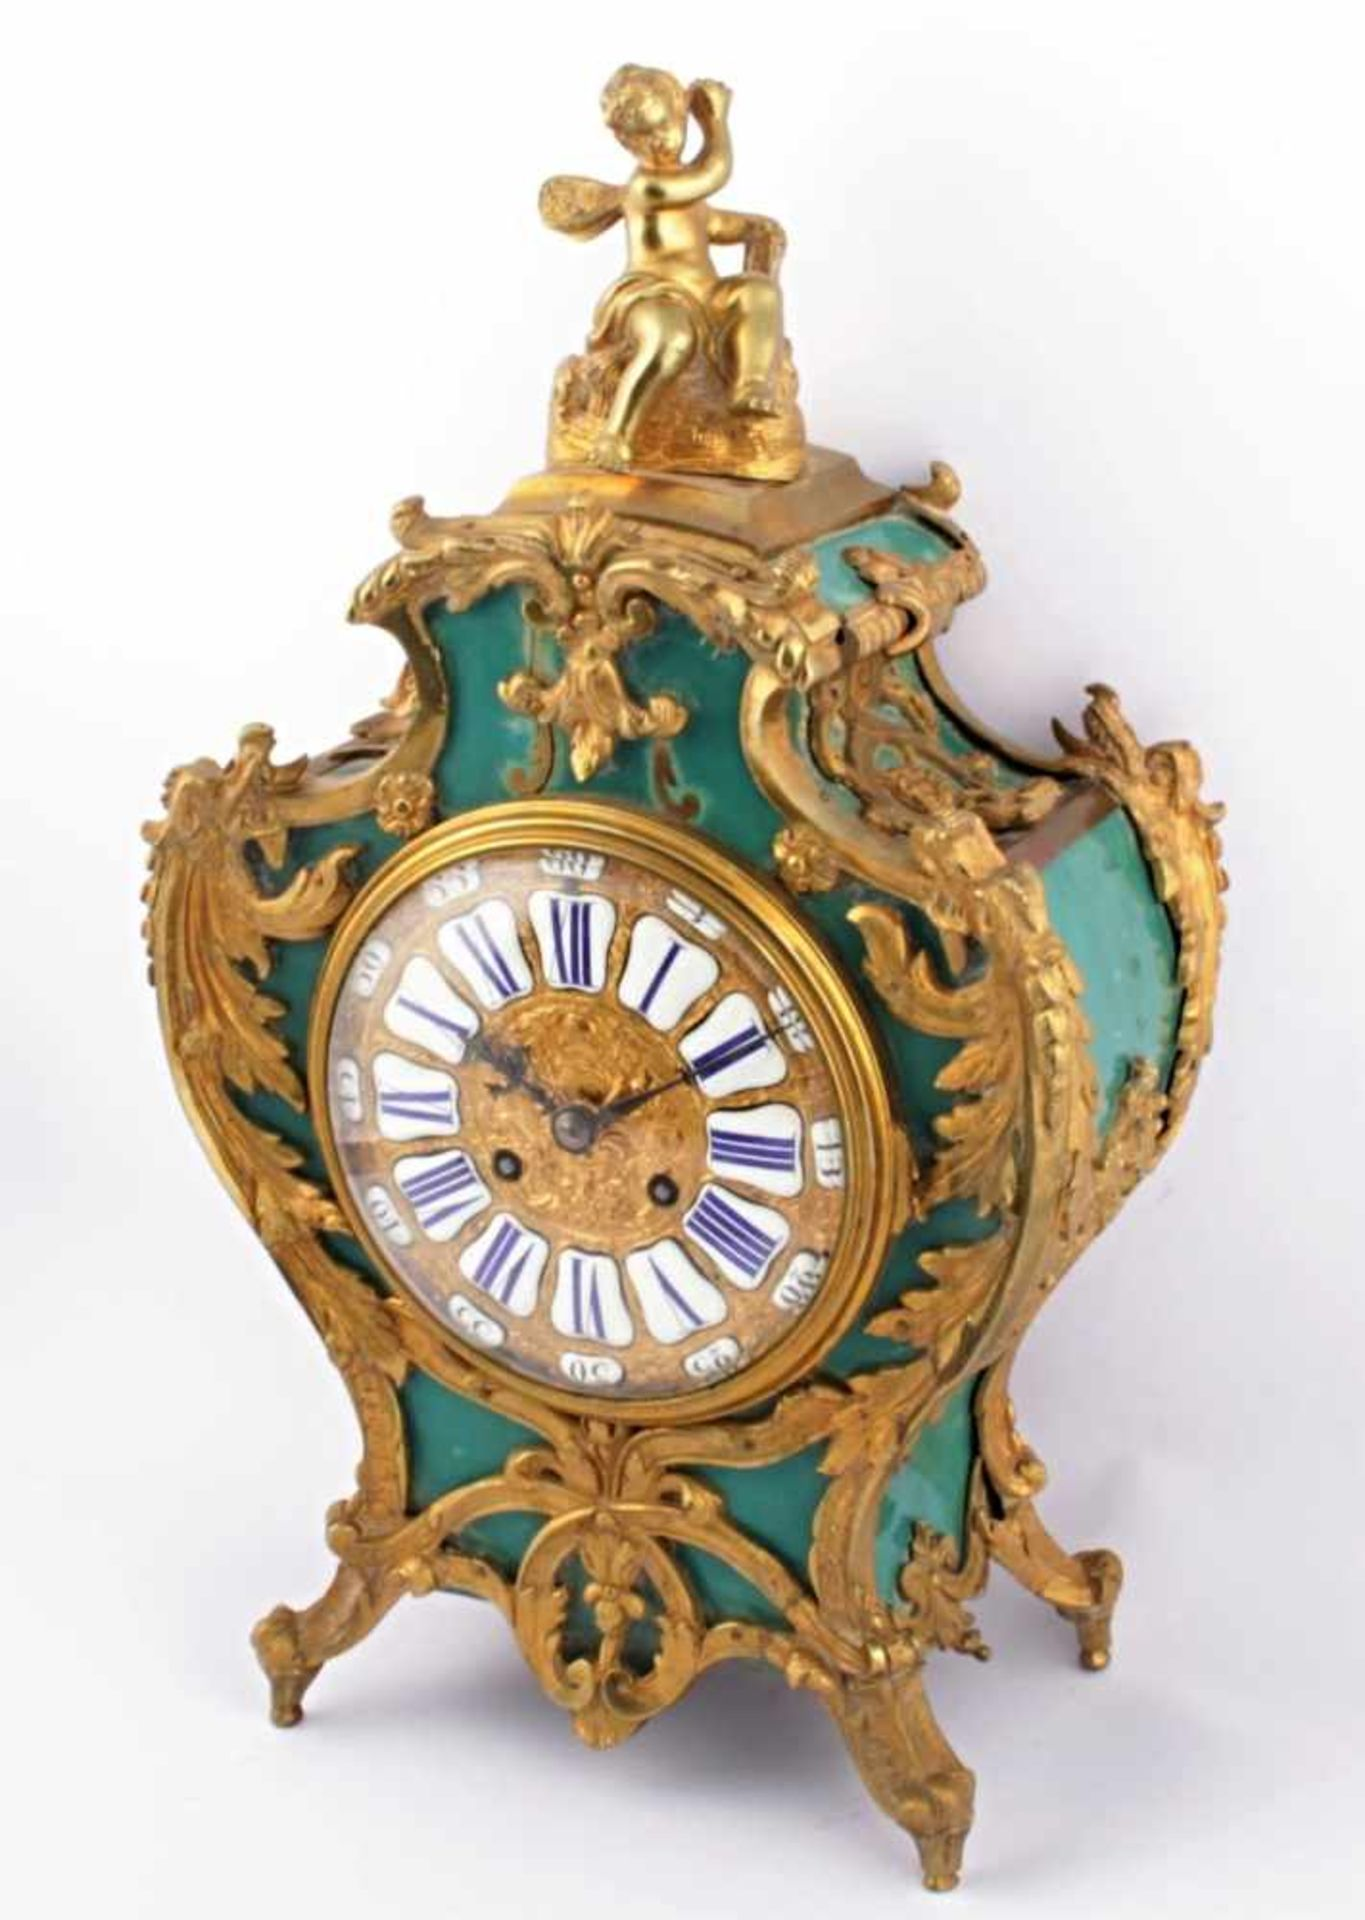 Los 26 - French table clock France, 19th century, relief gold plated dial, enamel panels with numbers,